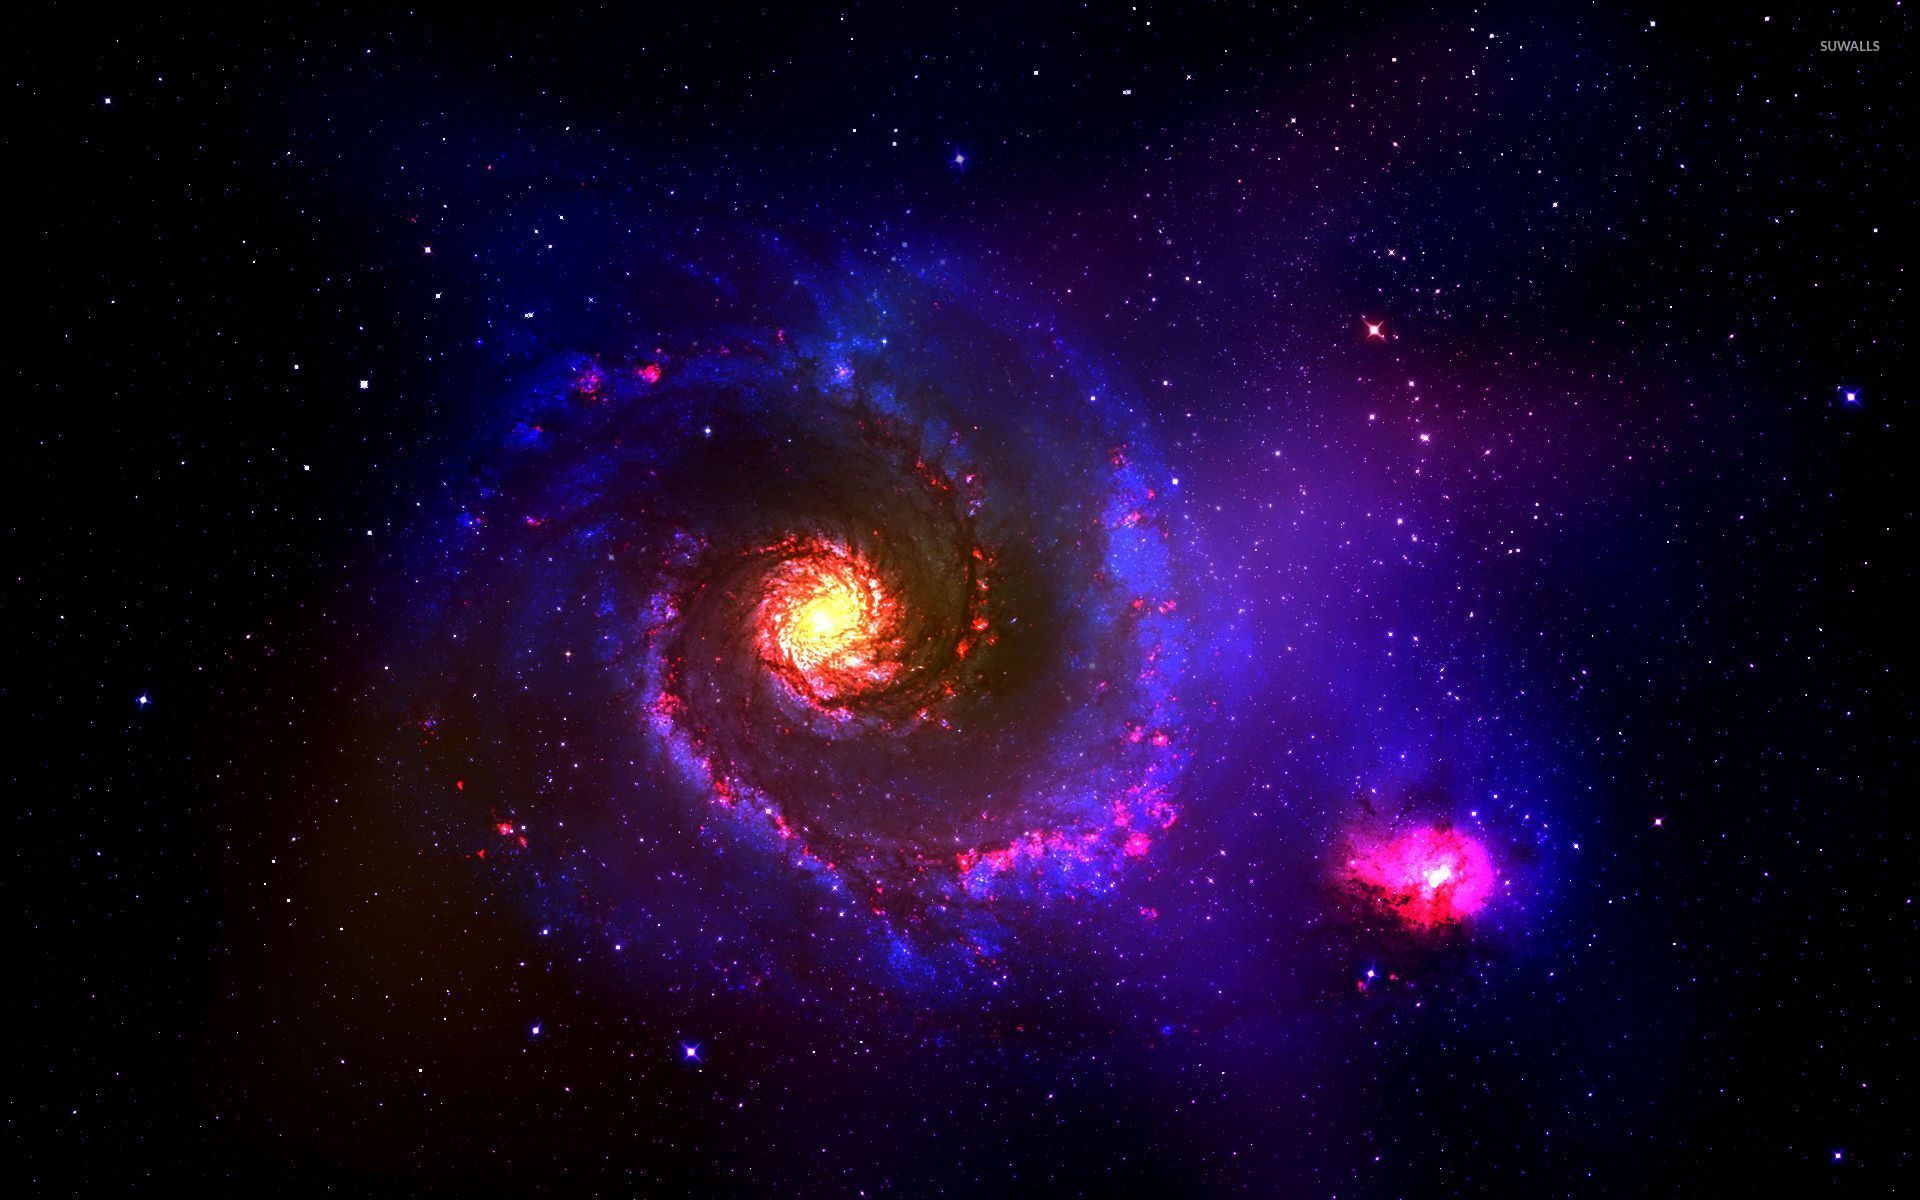 1920x1200 Planet in the red and blue galaxy wallpaper - Space ...